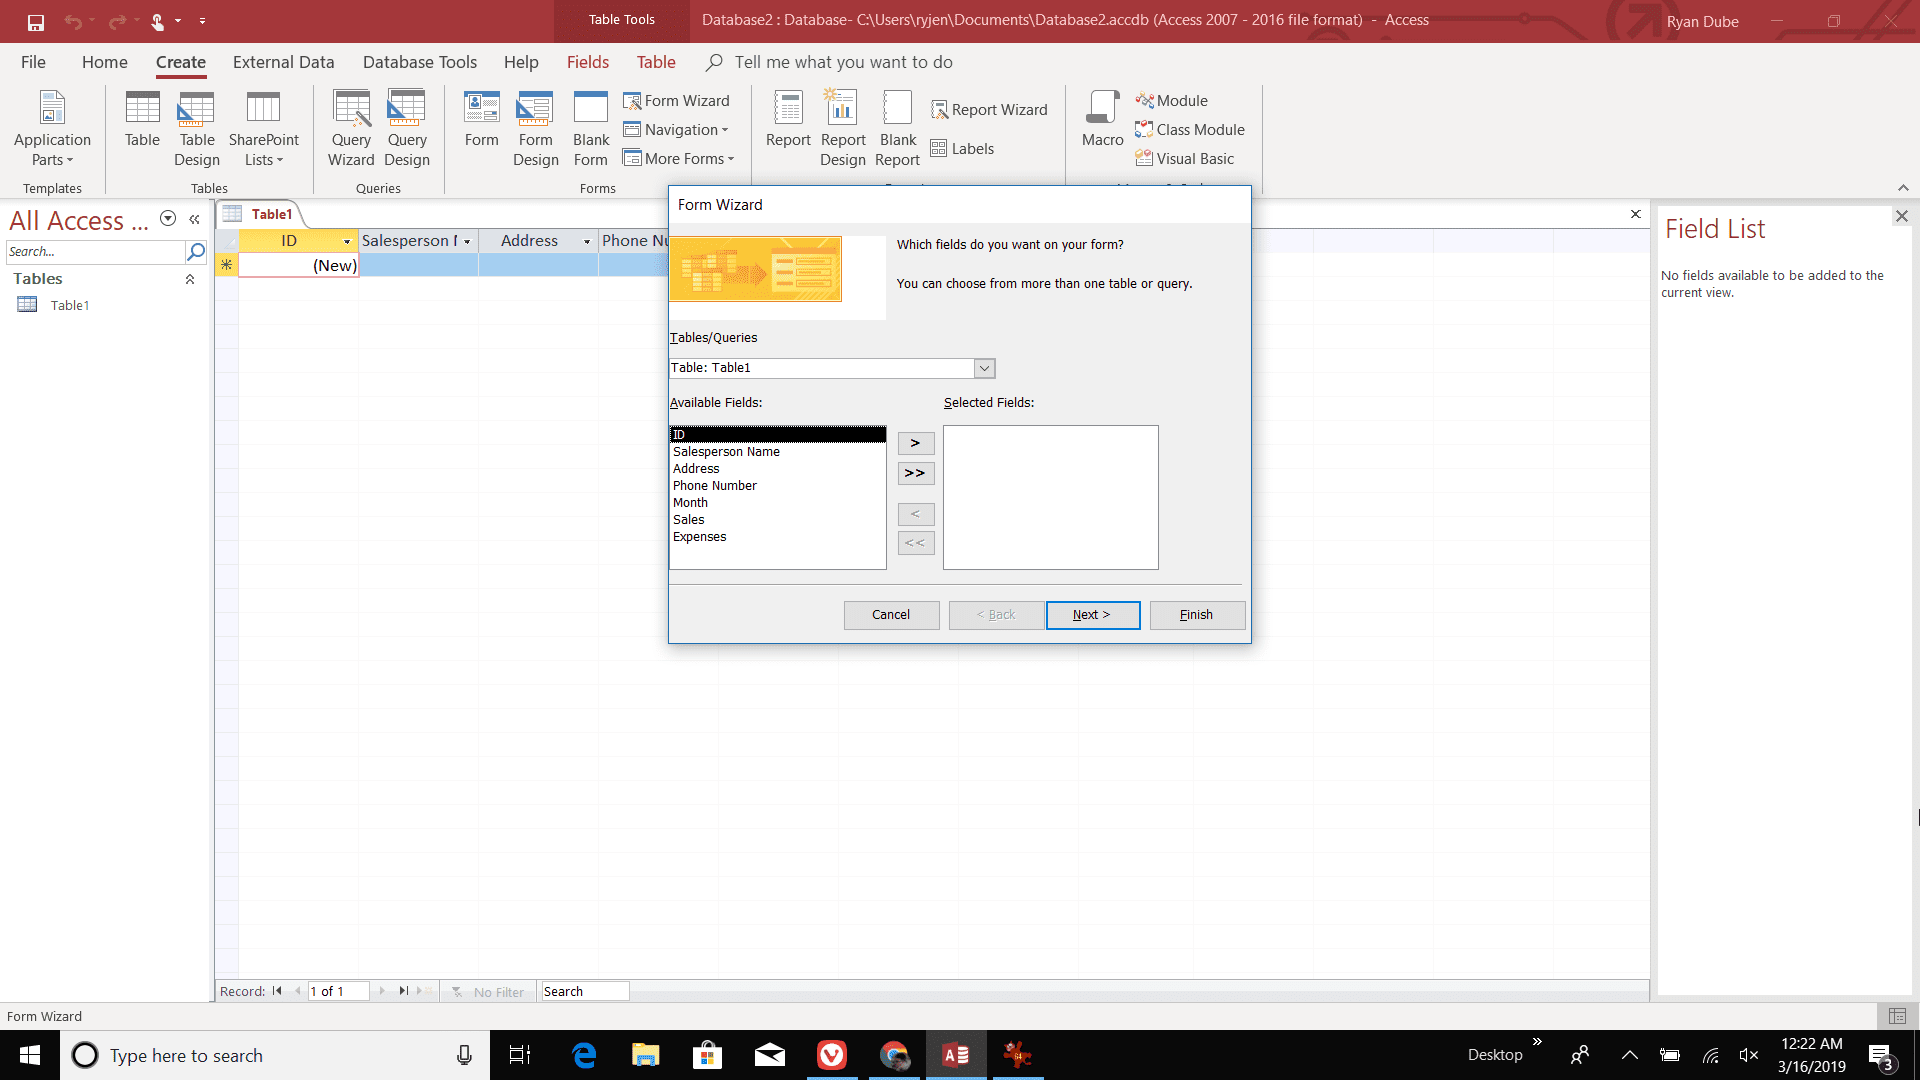 Use Access Input Forms to Enter and Modify Data